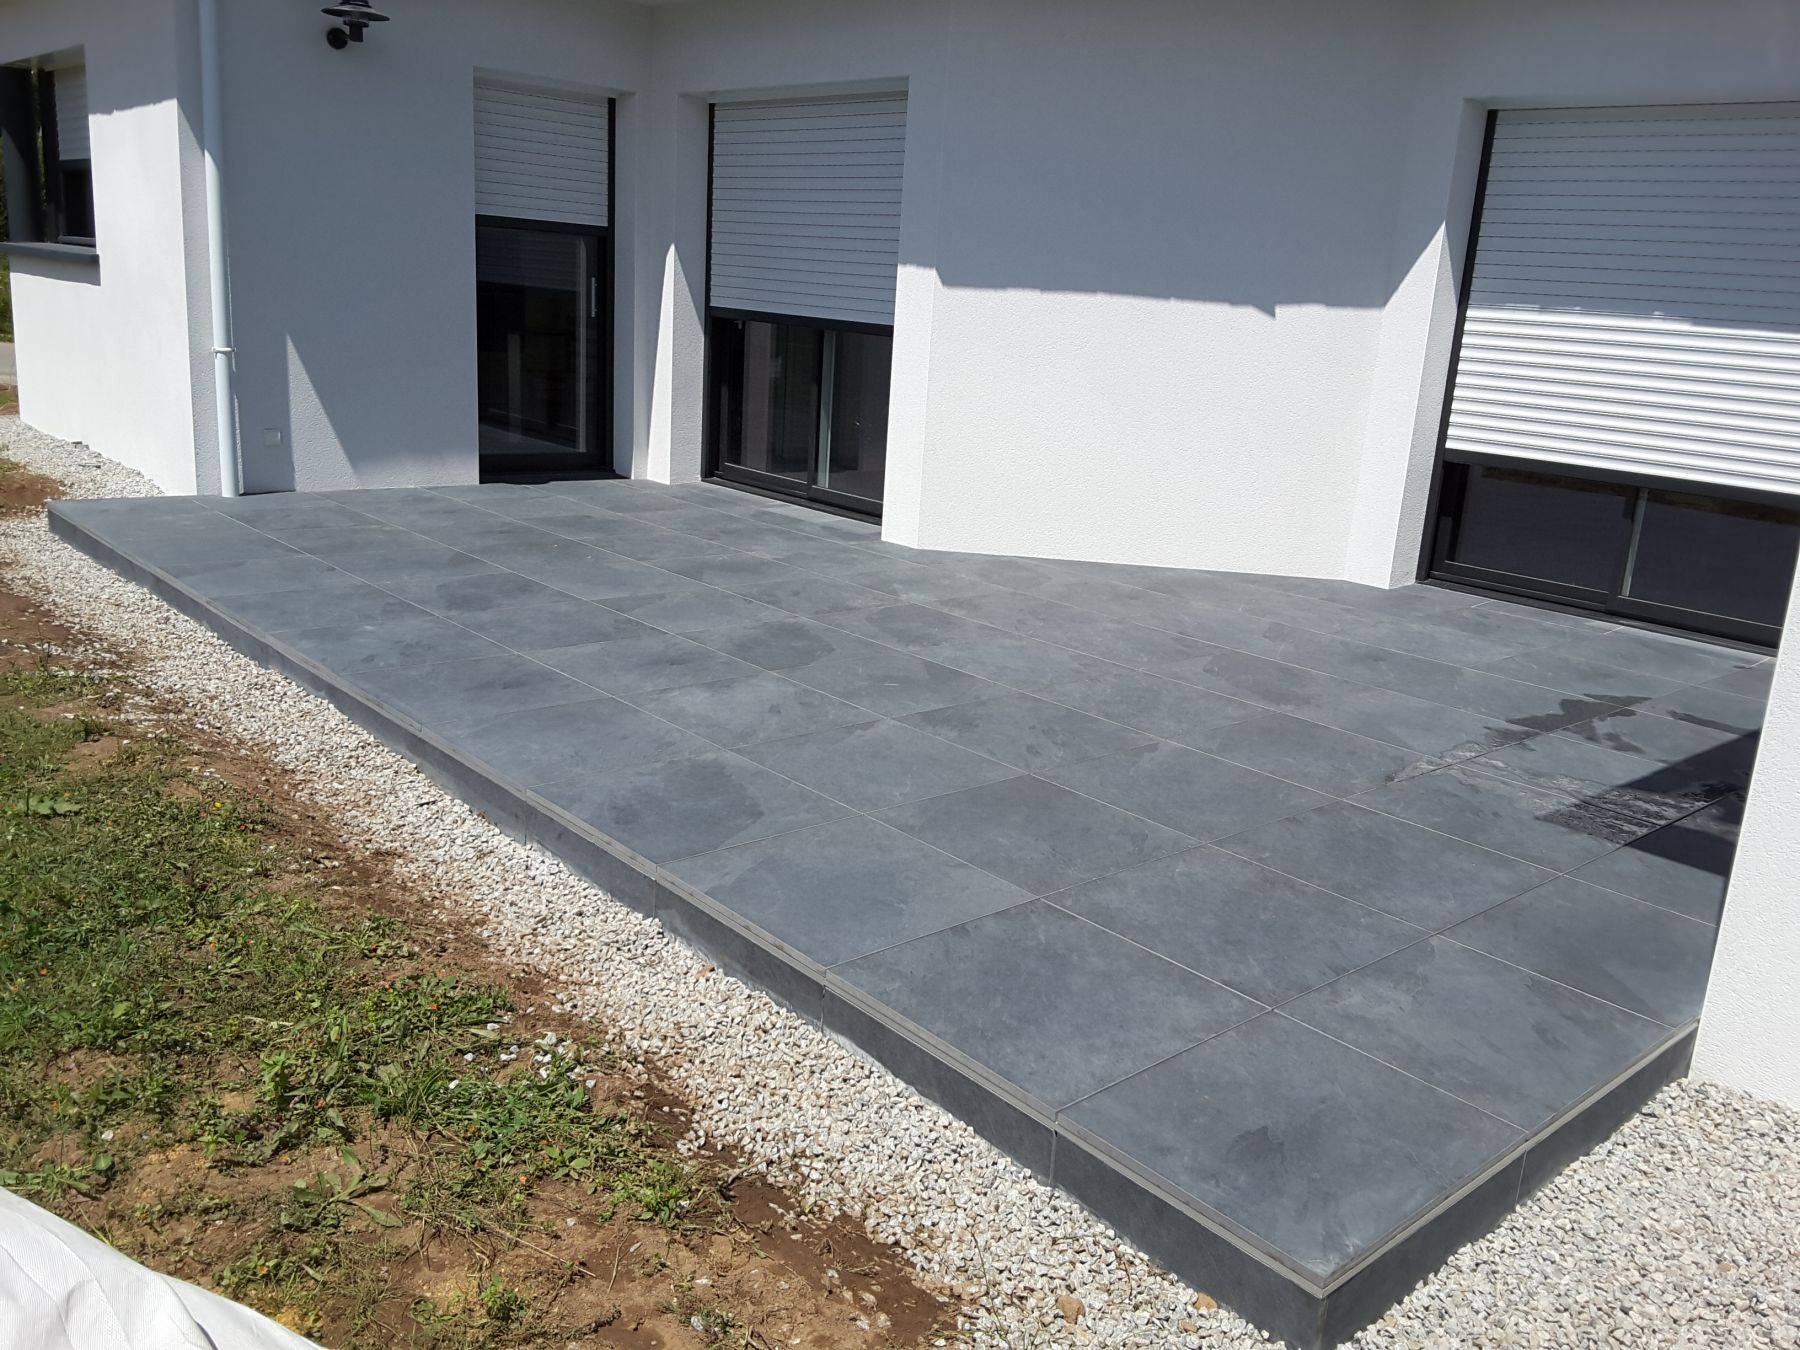 Carrelage design carrelage sur plot moderne design for Carrelage sur plots